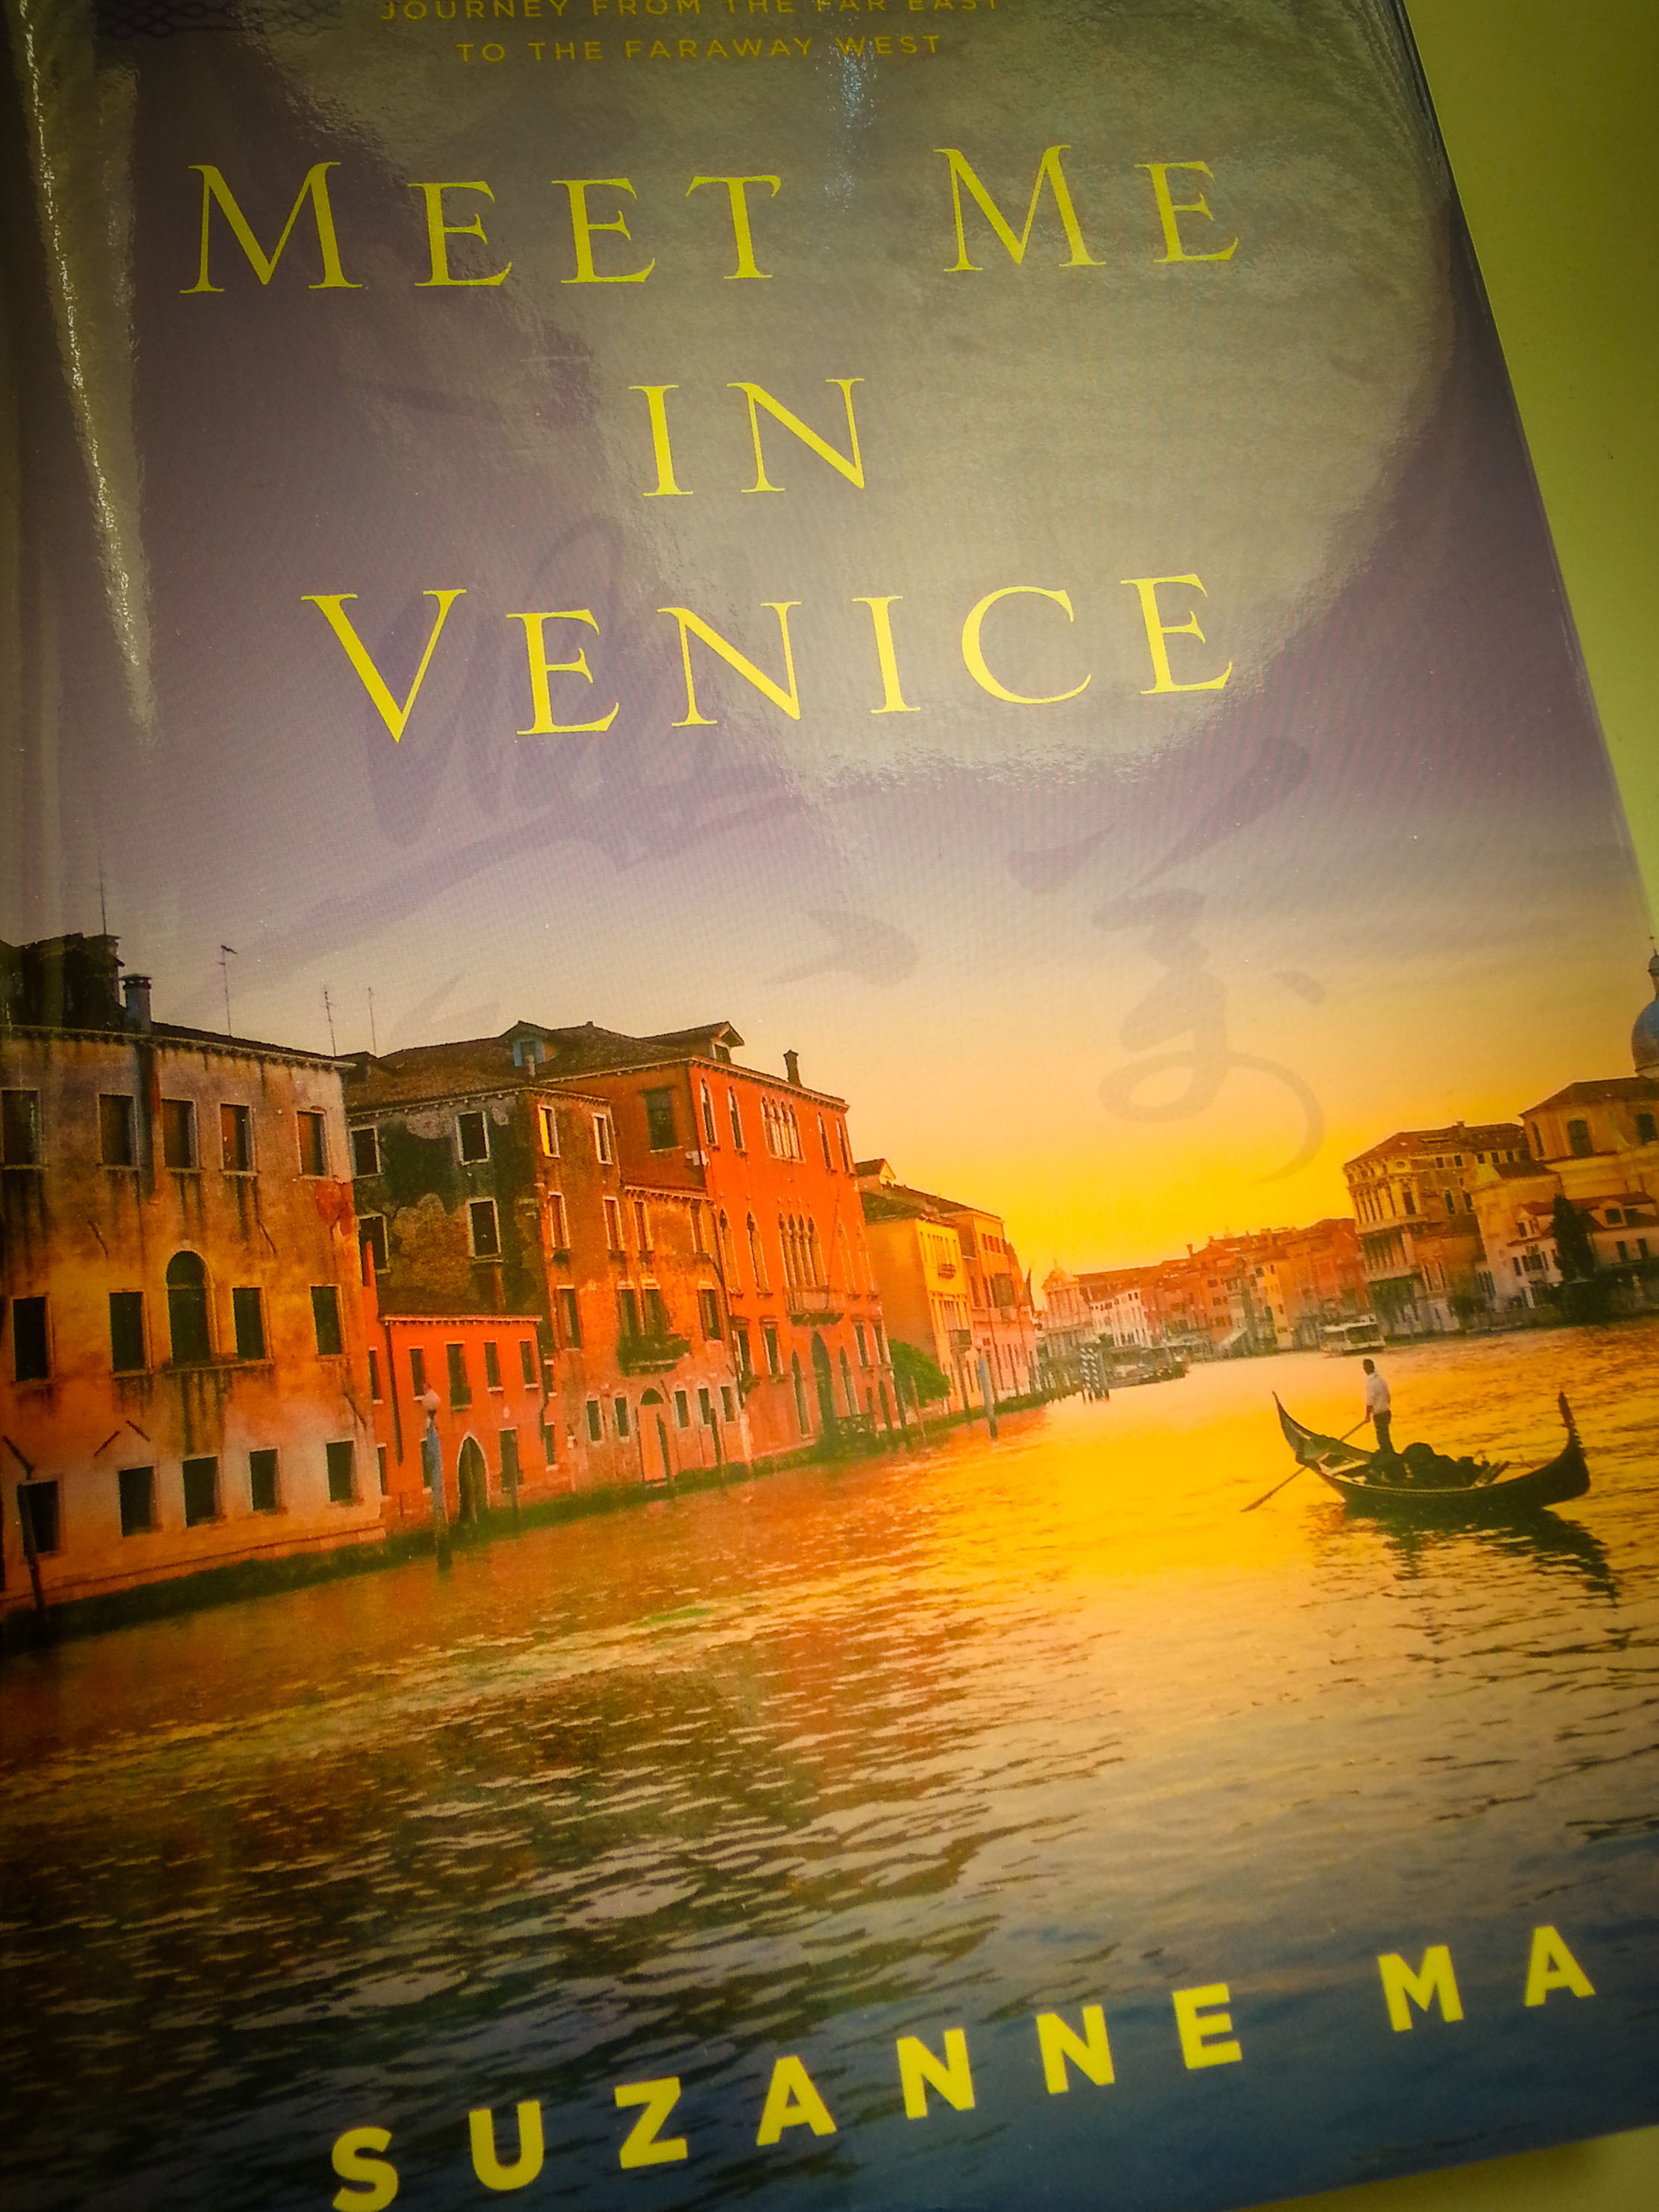 Meet me in venice edited